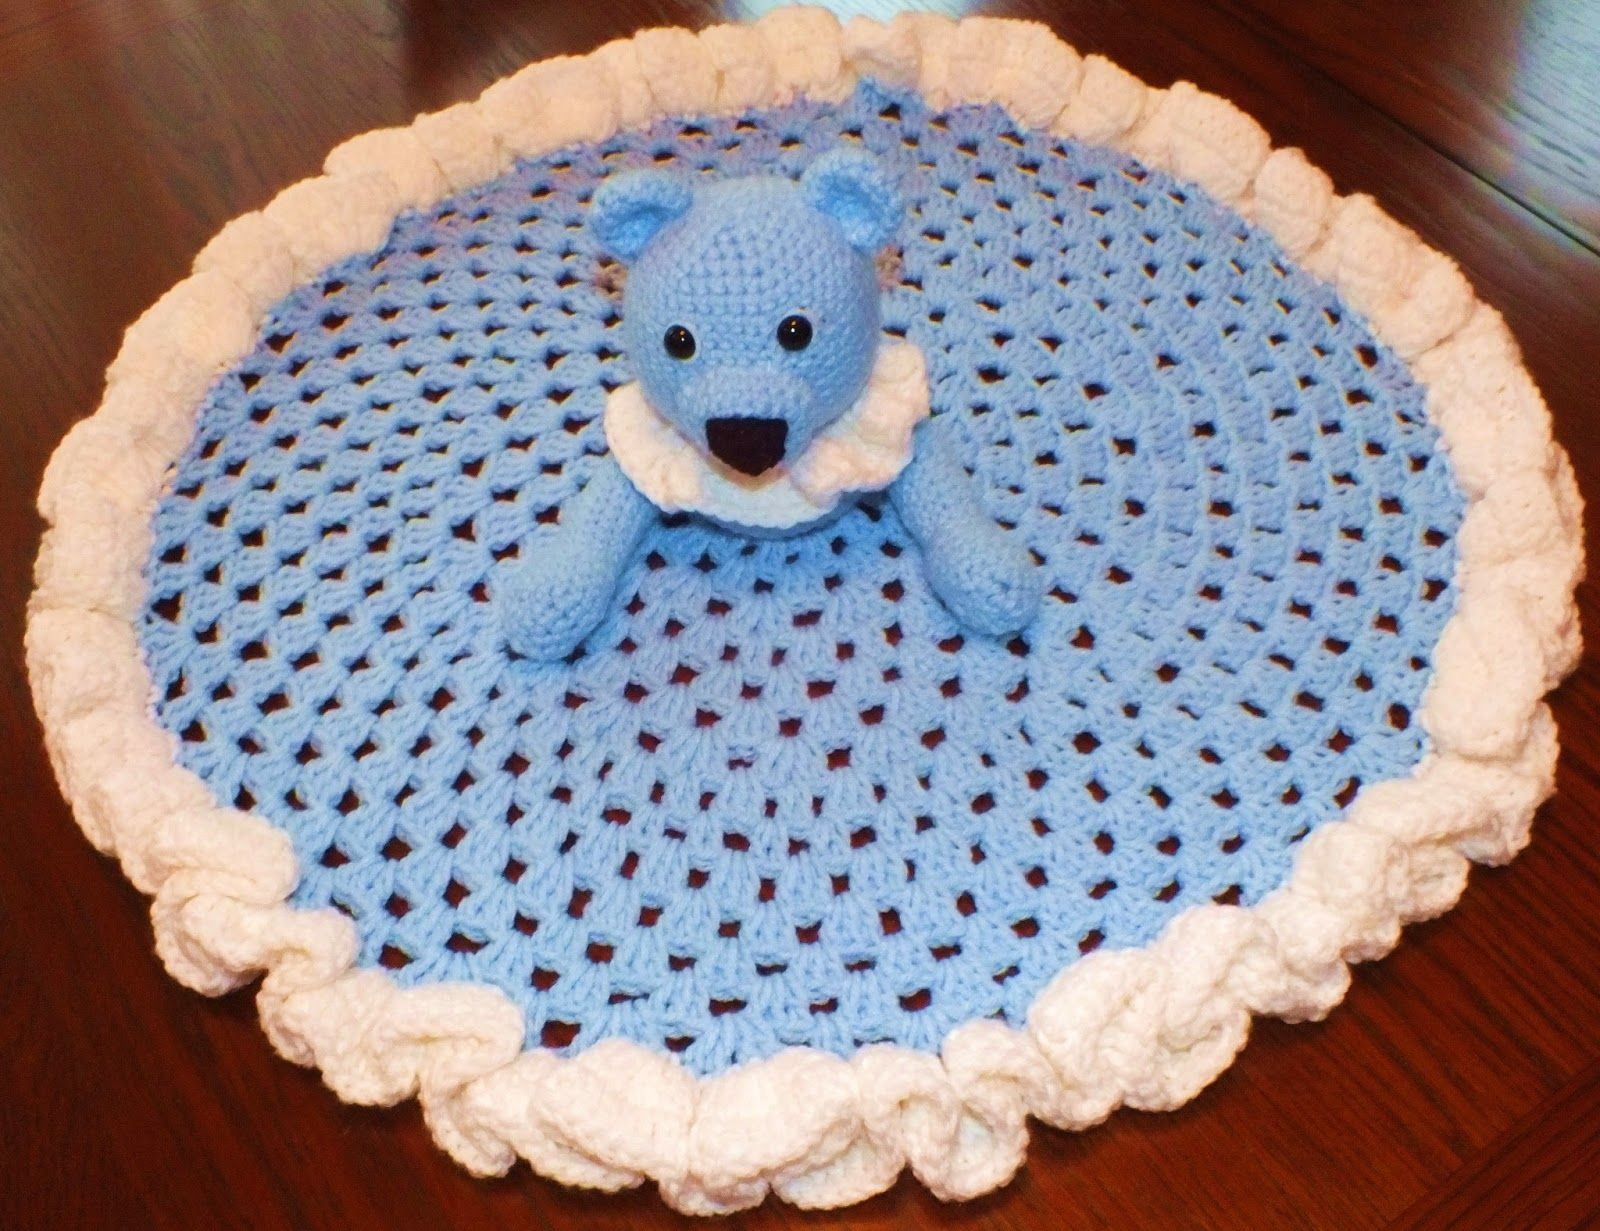 Connies spot crocheting crafting creating free teddy bear heres another free pattern by connie hughes designs free teddy bear granny circle security blanket pattern bankloansurffo Images